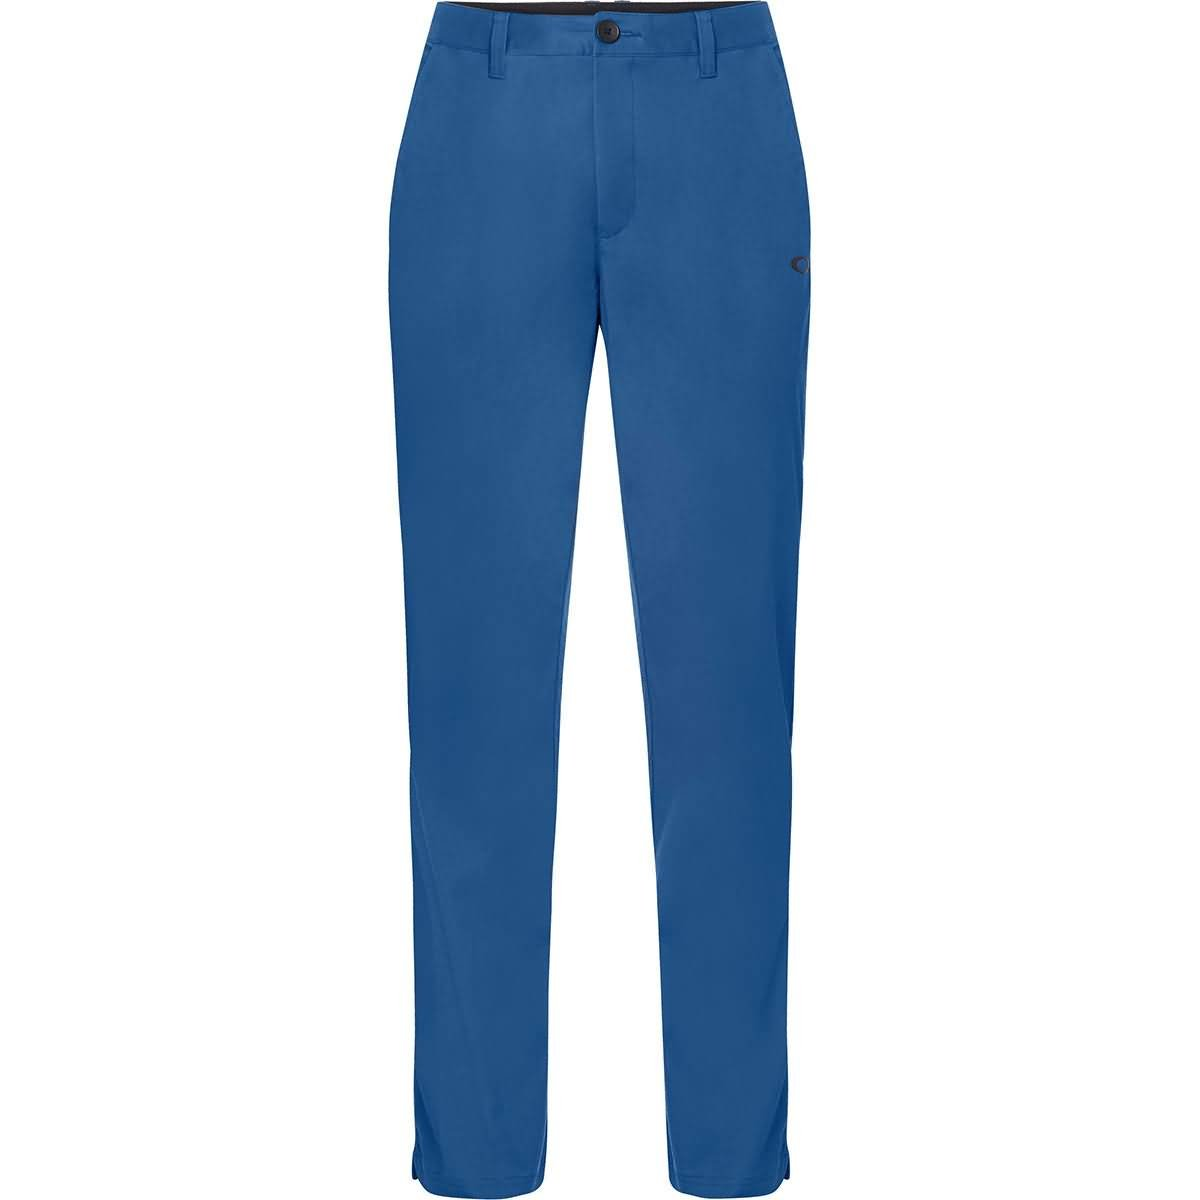 Oakley Men's Chino Icon Golf Pant, Ensign Blue, 31 by Oakley